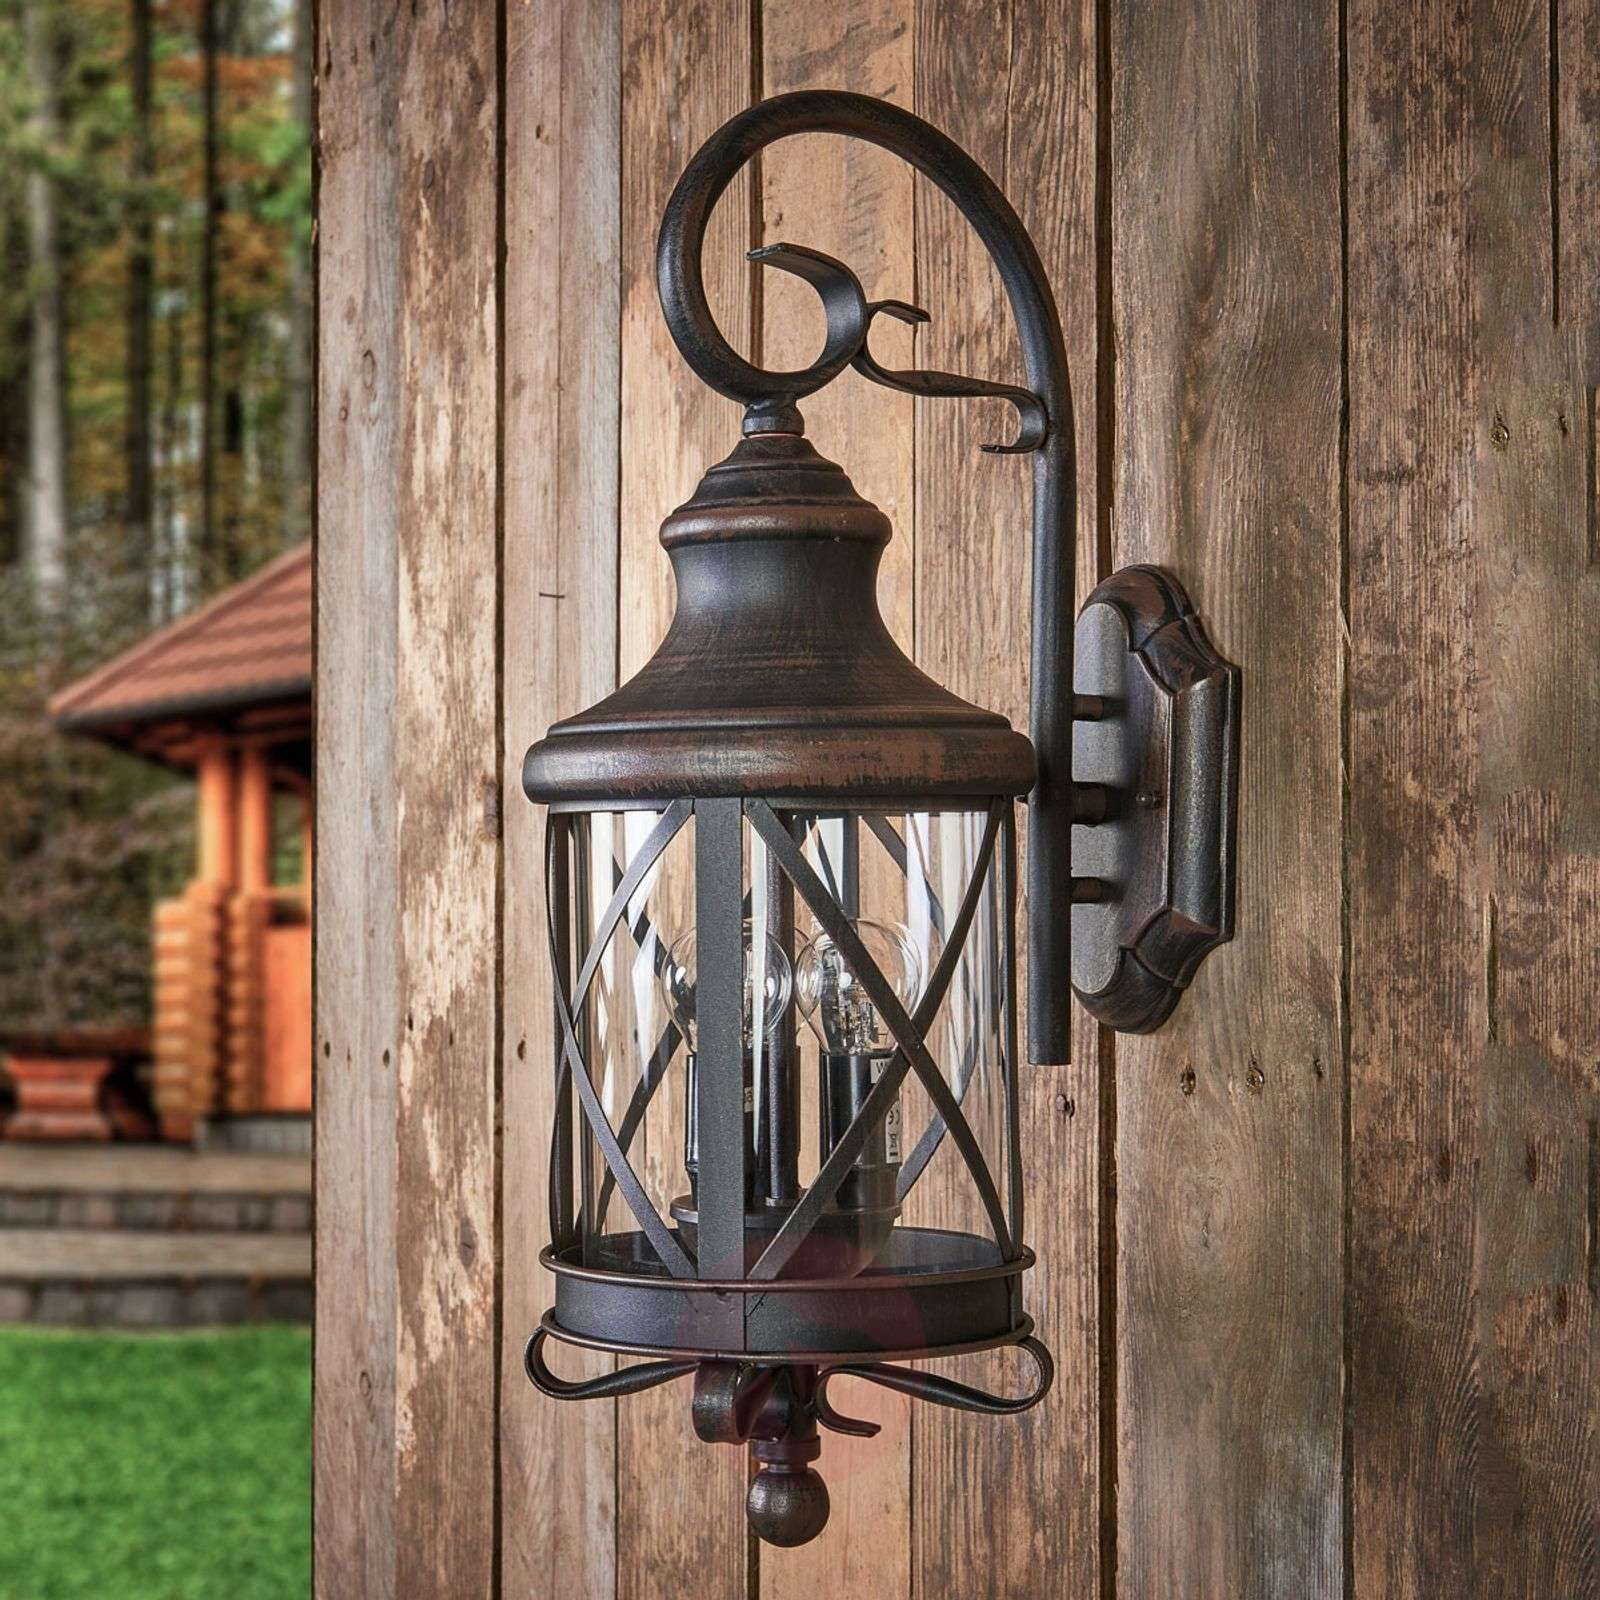 Rustic outdoor wall light Romantica-5515074-01